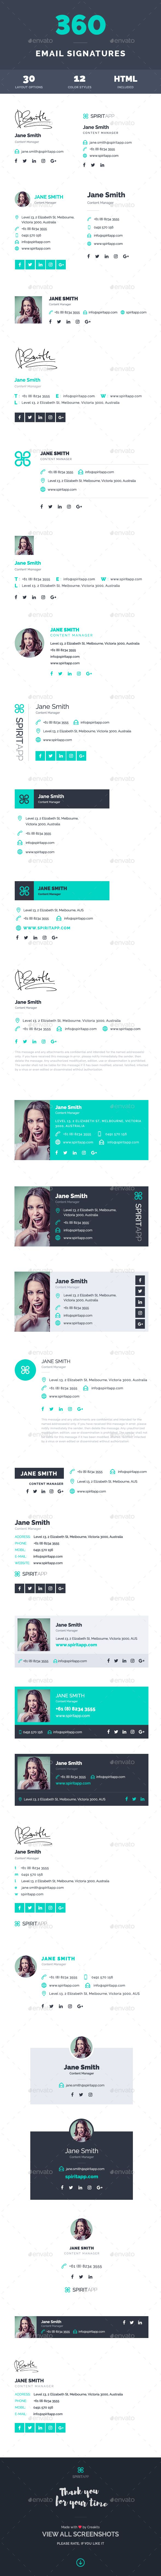 360 Professional E-Signature Templates - Miscellaneous Social Media